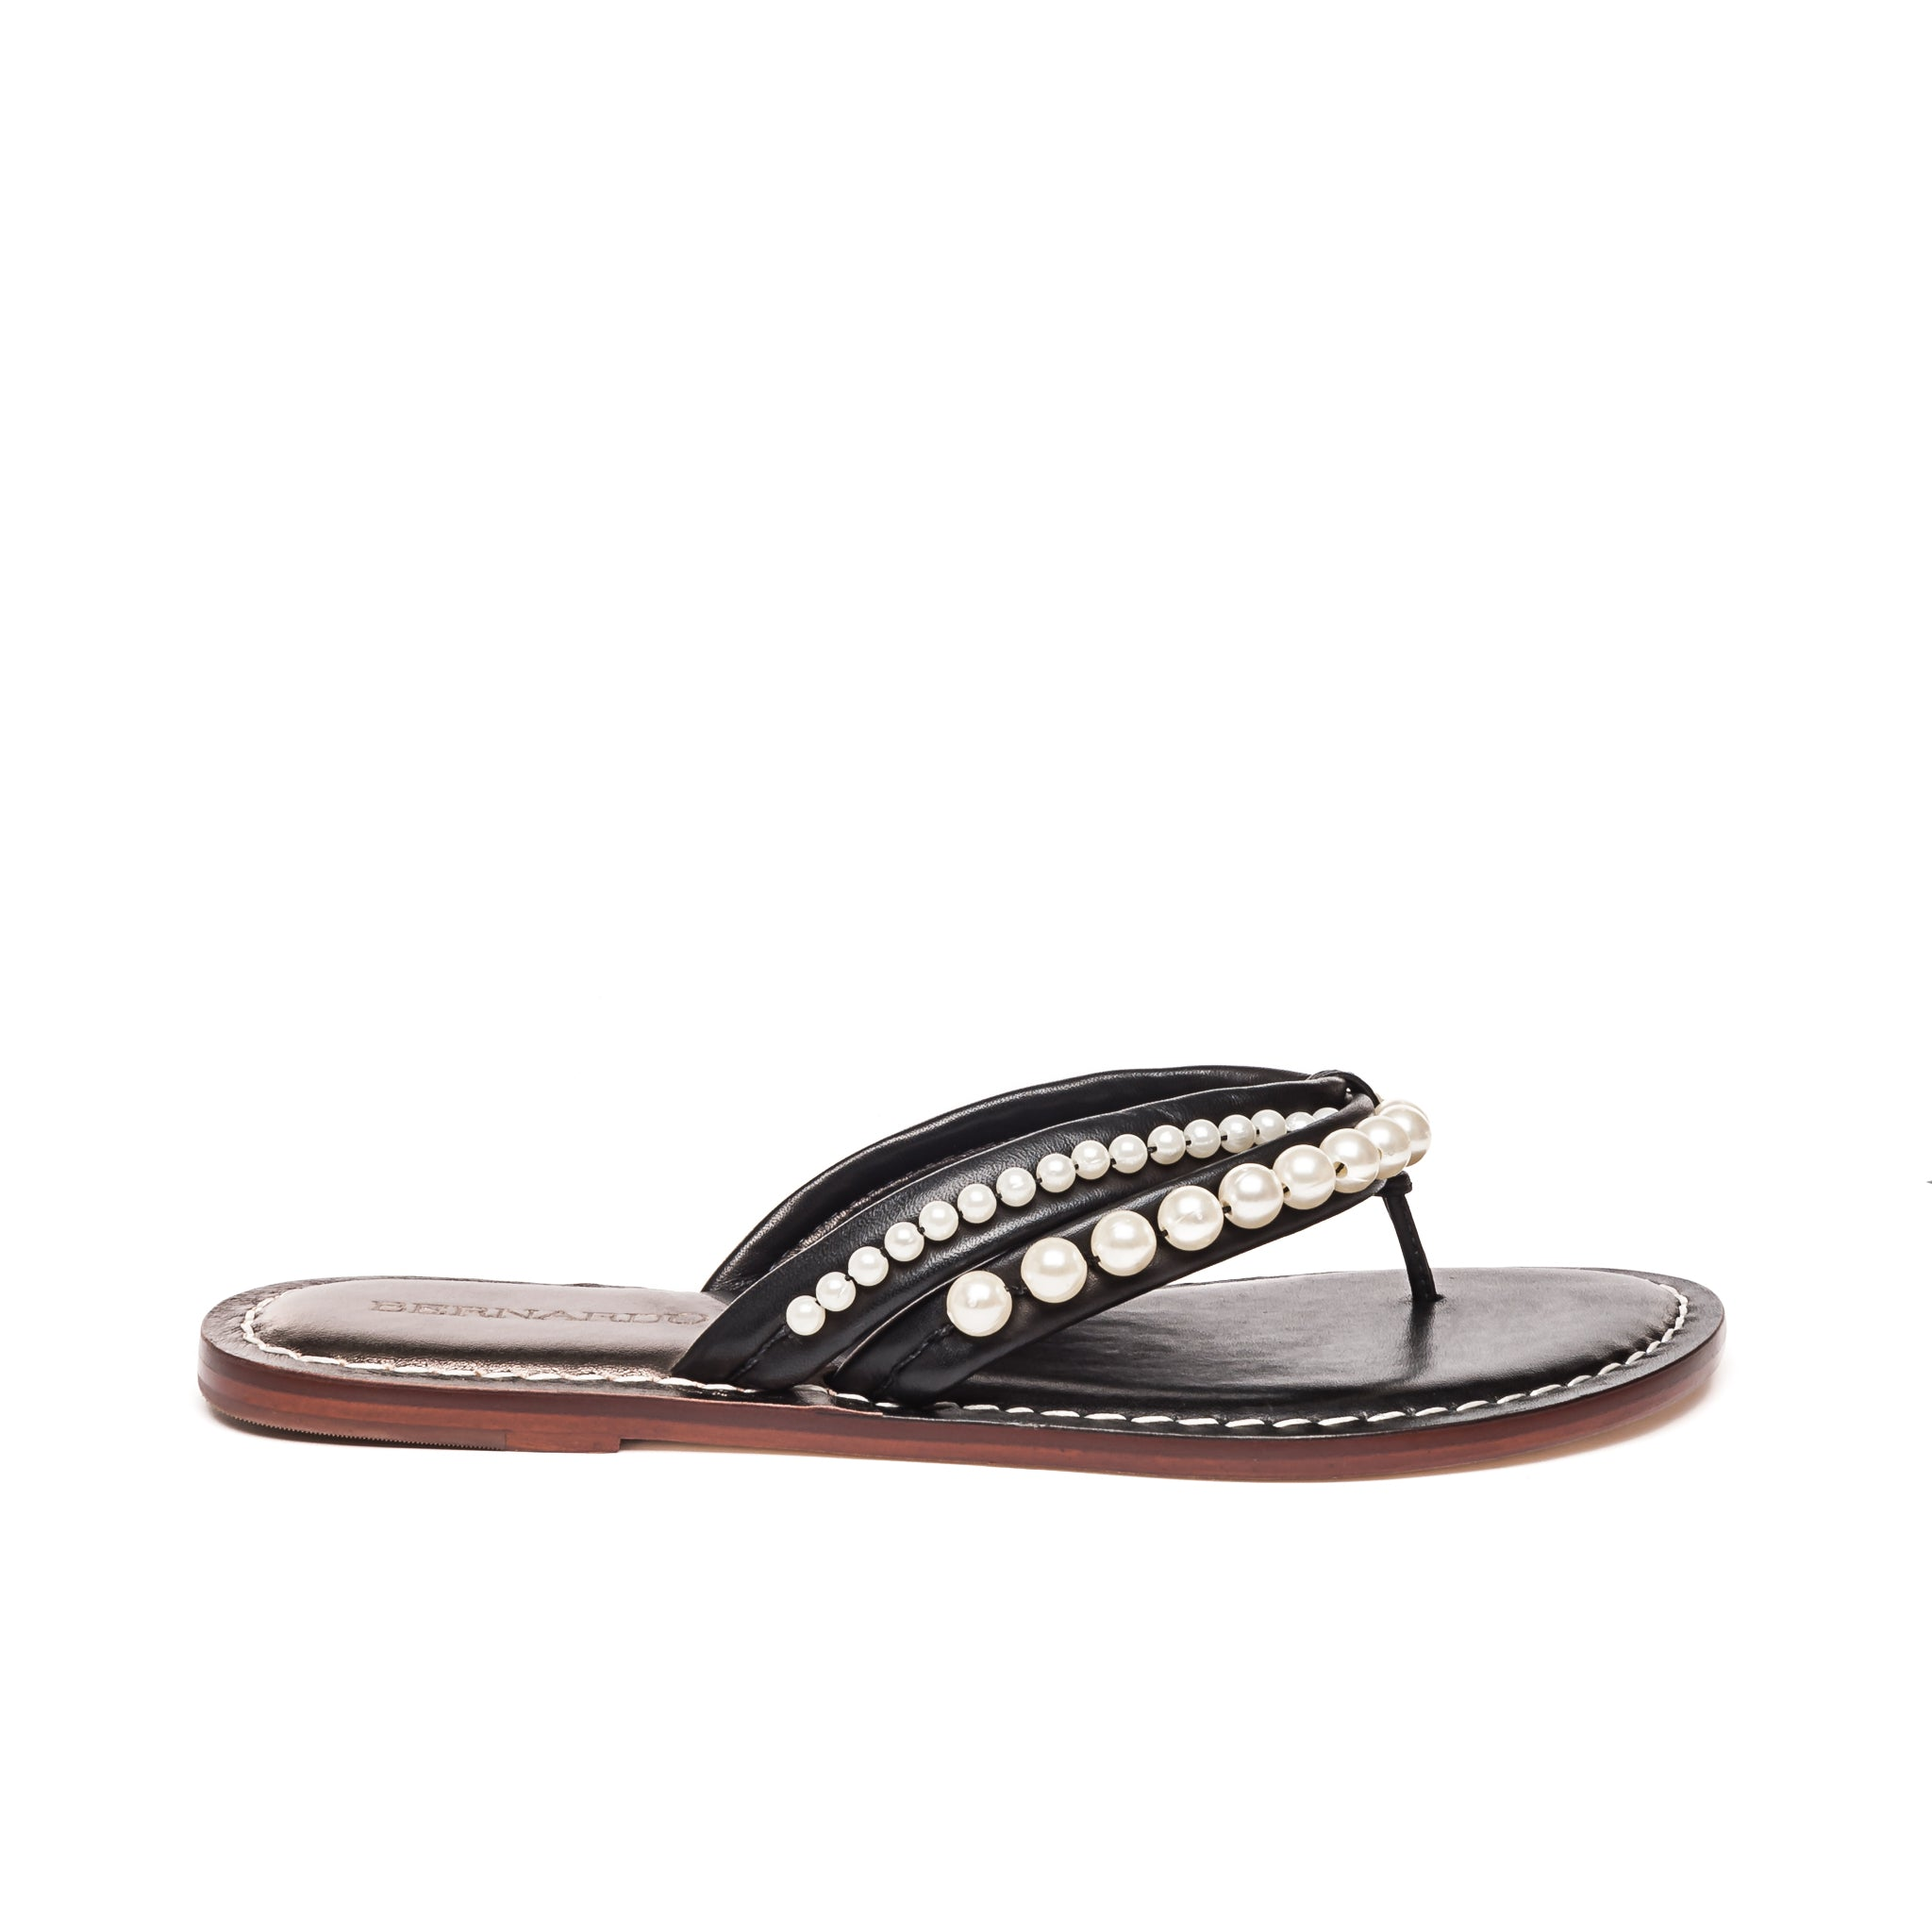 Side photo of Bernardo 1946's Miami pearl embellished 2 strap sandal, in black leather.